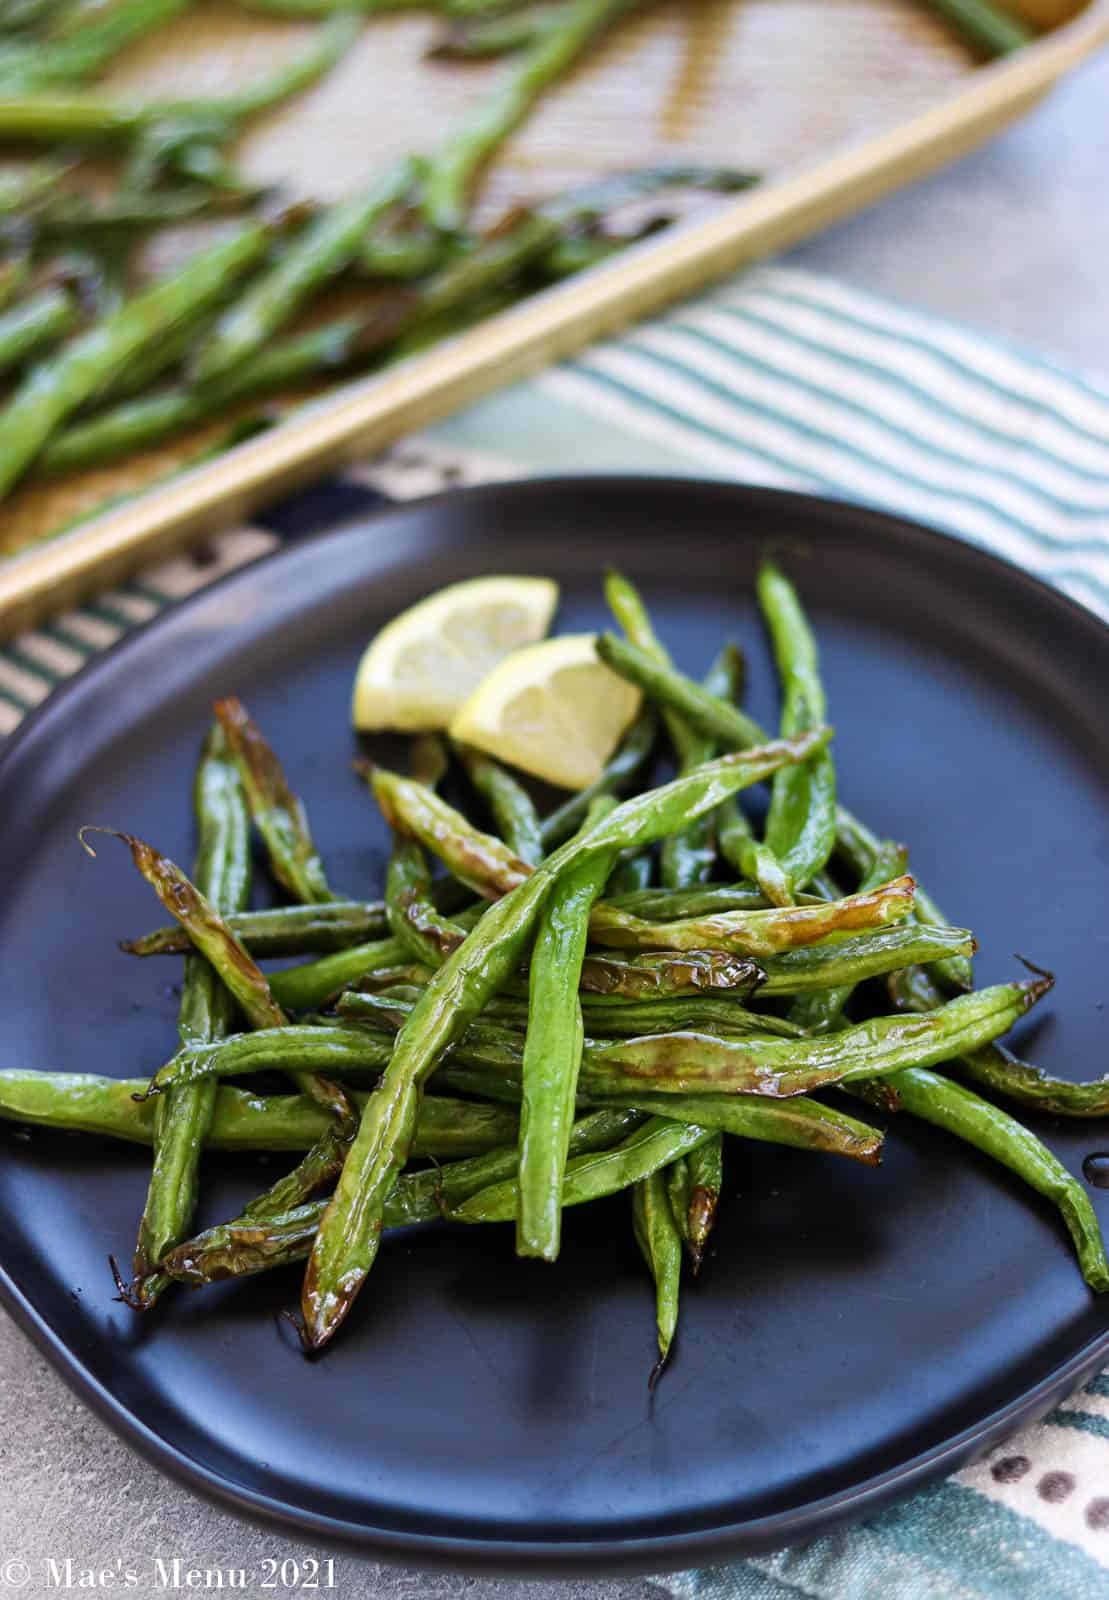 A side shot of a black plate of air fryer green beans with lemon